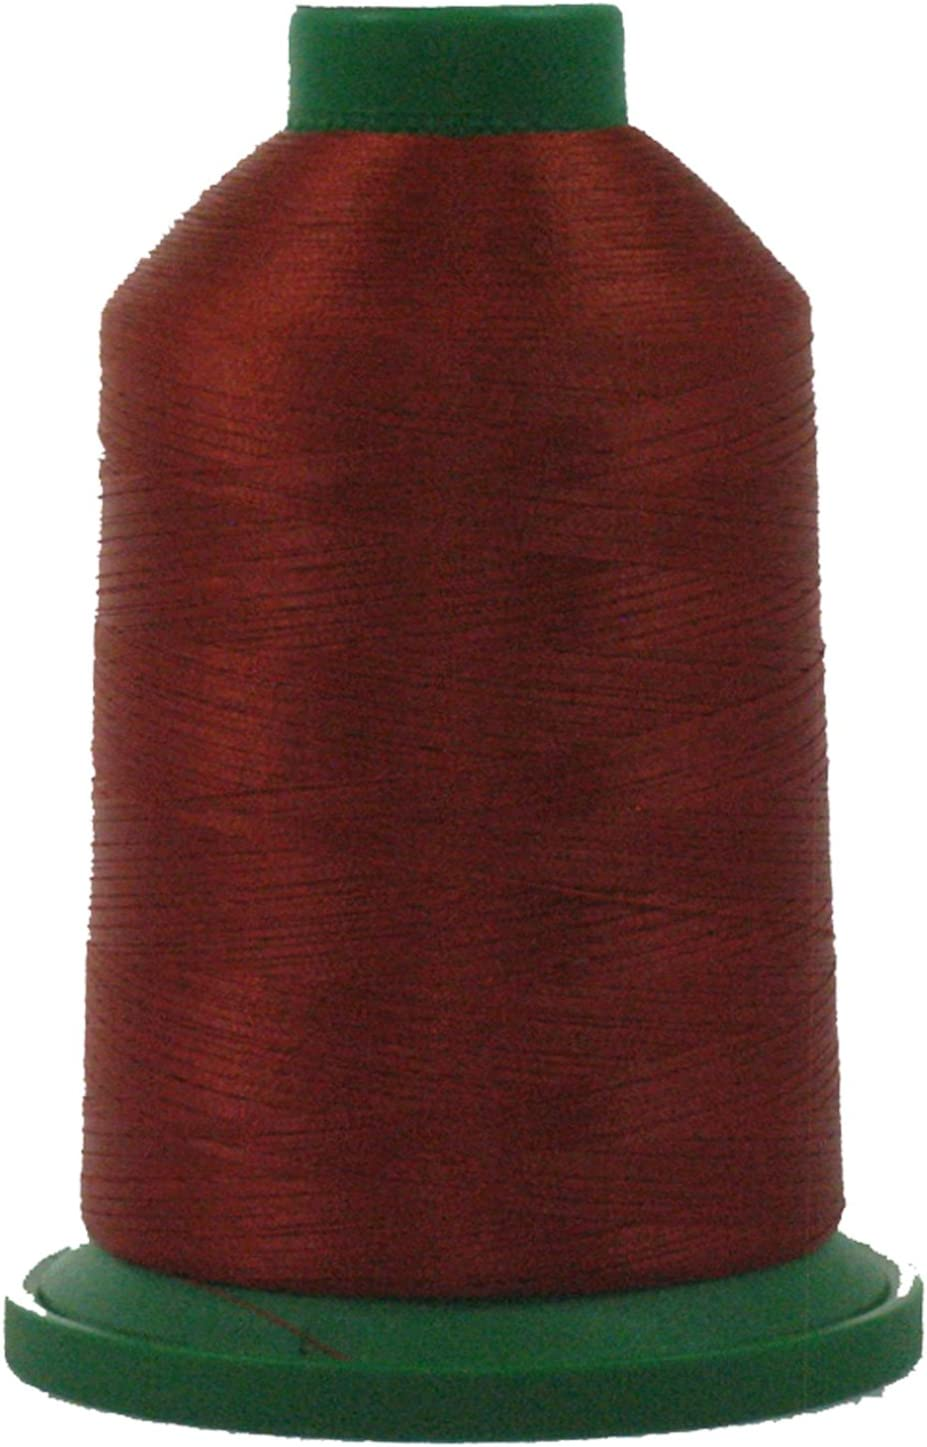 Isacord Embroidery Thread 5000m 1332 1332-1375